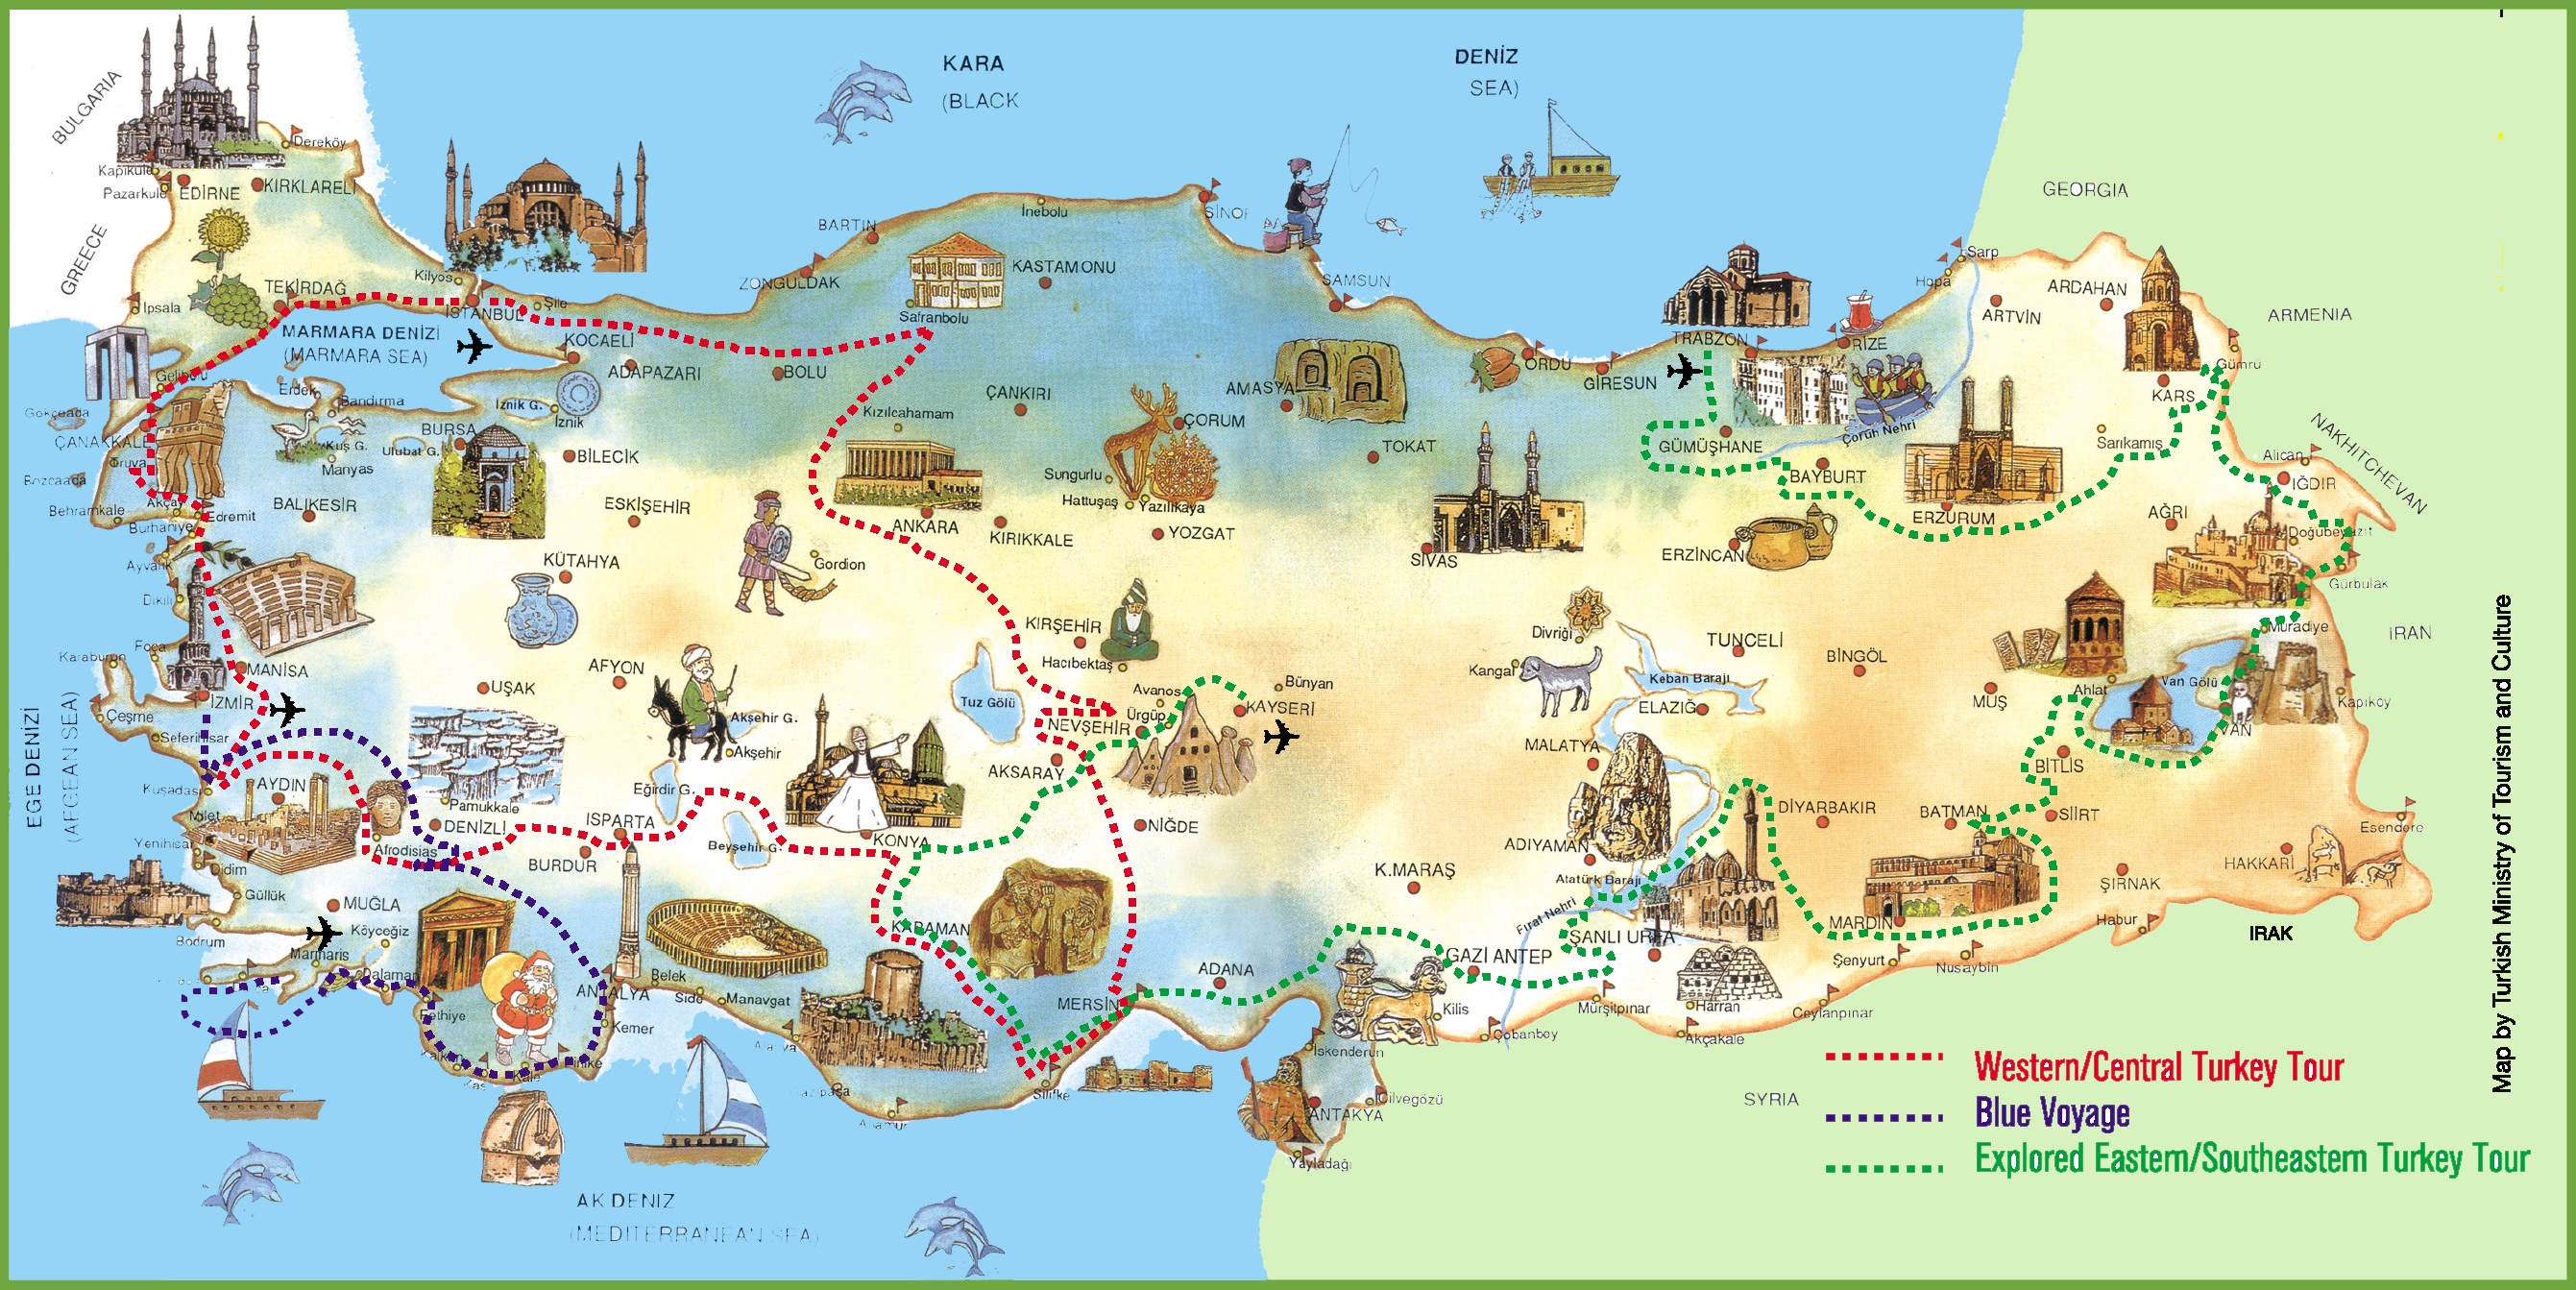 Turkey attractions map – Turkey Tourist Attractions Map